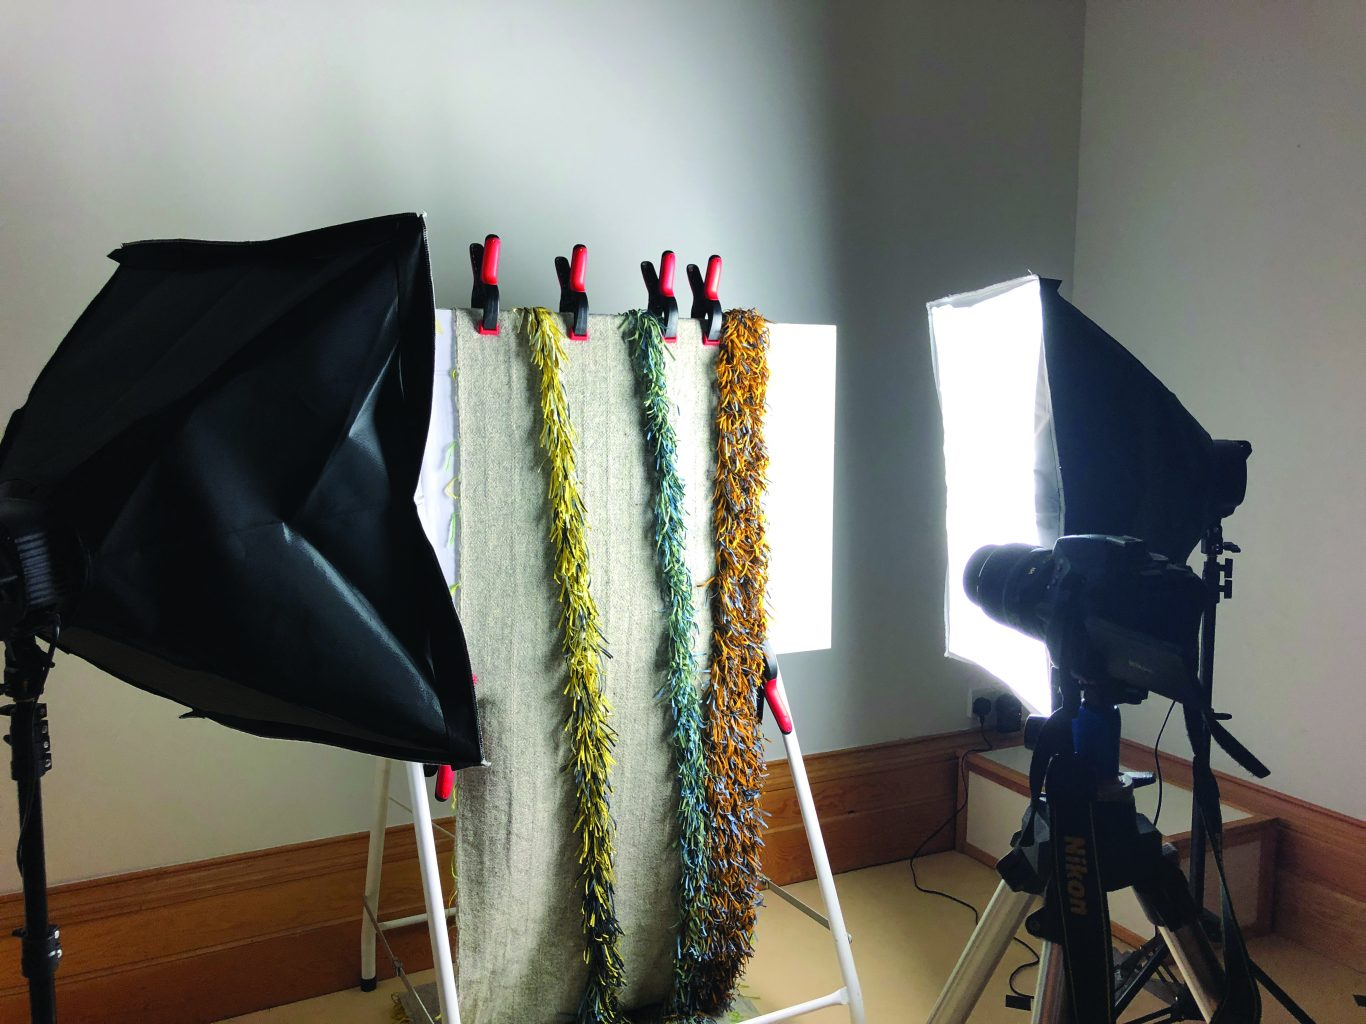 Woven cloth with linear fabric fringing hung upright on a board, lit with bright lights and a camera pointed at it